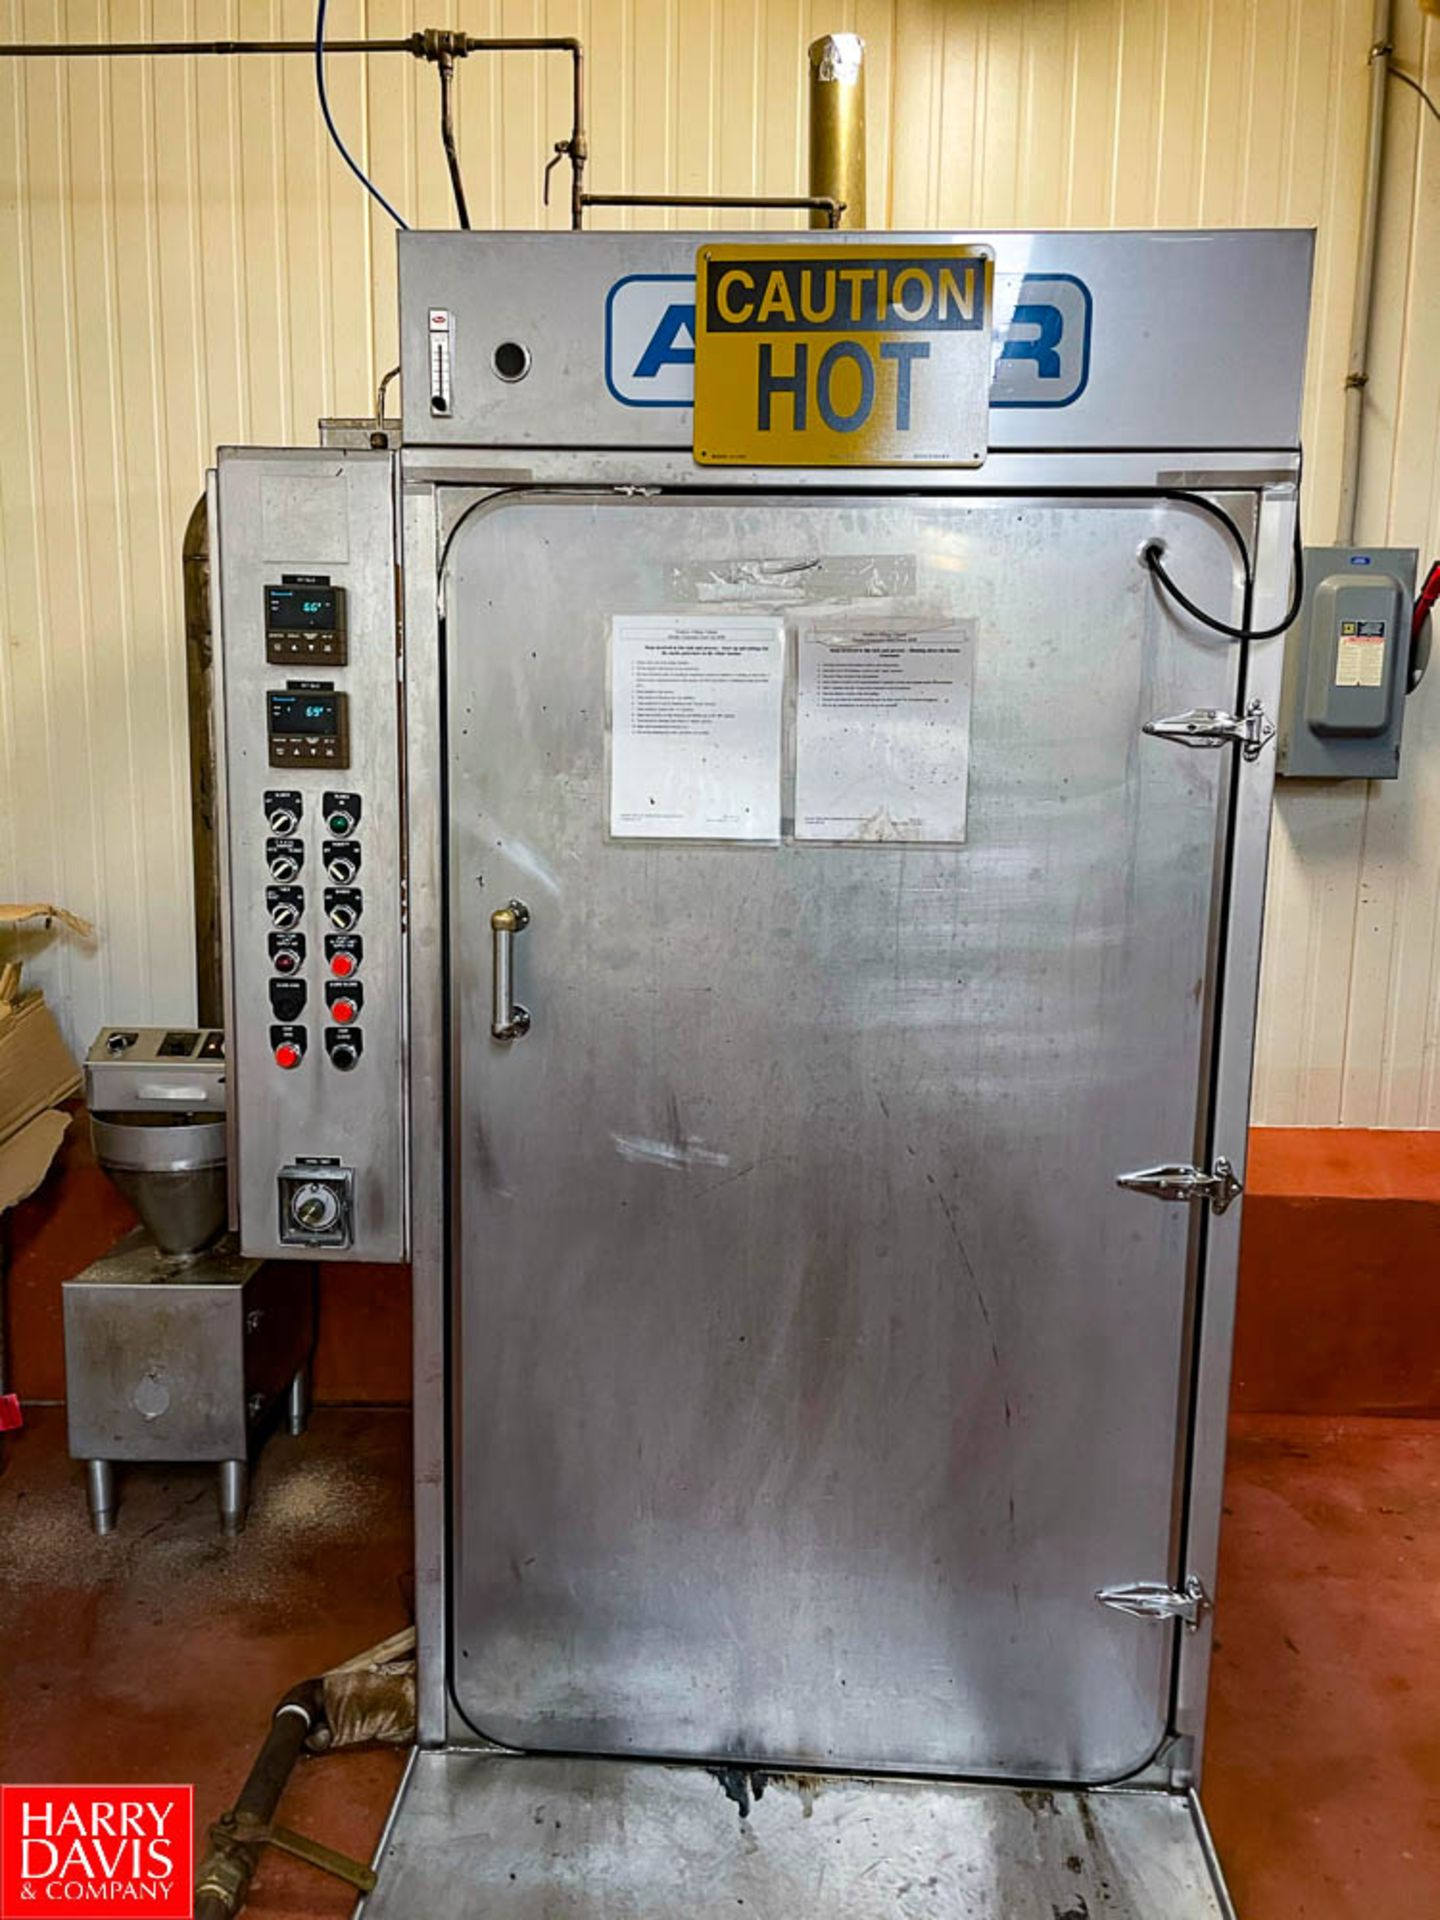 2015 Alkar Smoker with 120 Volts S/N: 8000771115E1F075 - Image 3 of 10